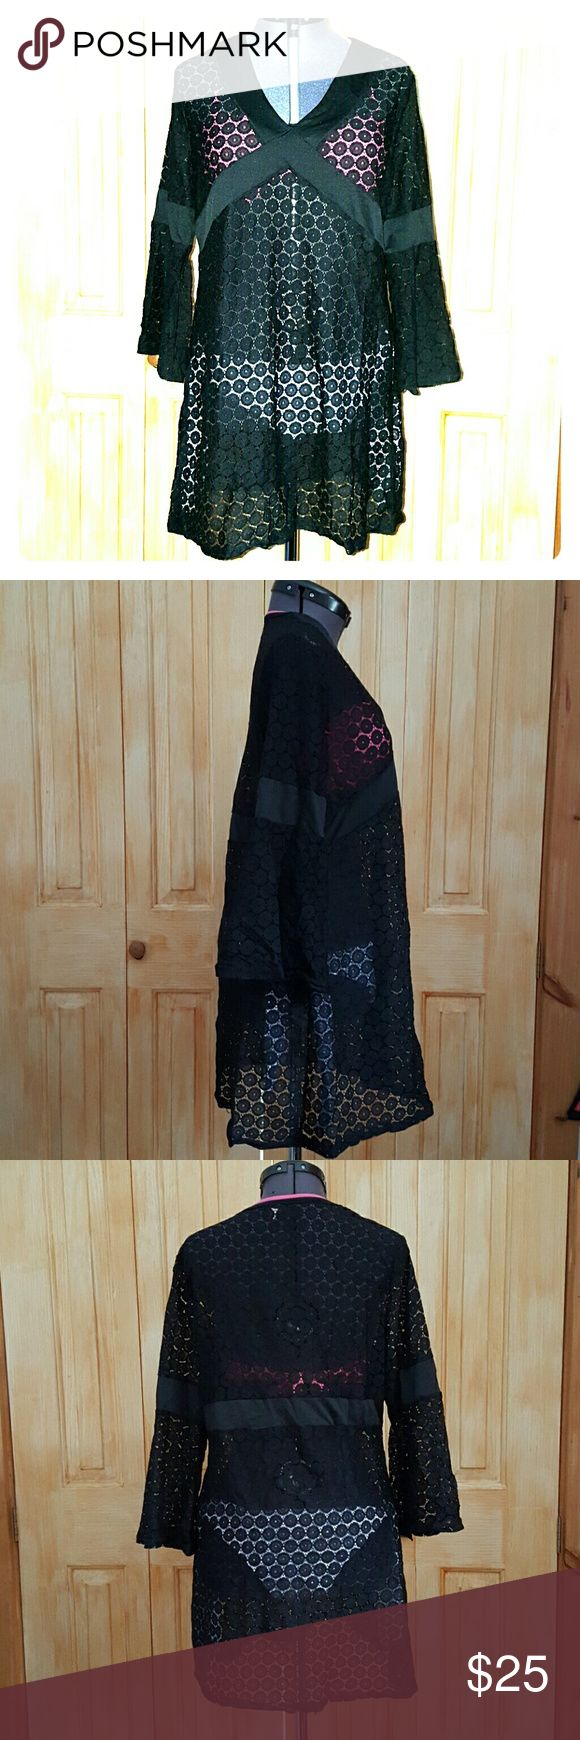 Bell Sleeve Lace Cover Up Beautiful black lace swimsuit v neck cover up with bell sleeves. This is versatile enough that you cou also pair it with legging and a cute cami underneath. Makes it totally worth the $ to be able to wear it 3 seasons instead of just the summer. Mermaid bikini shown underneath also listed. Dress form is set at 34-25-36. The tag says medium, but could easily fit a size larger or smaller. Boutique Swim Coverups